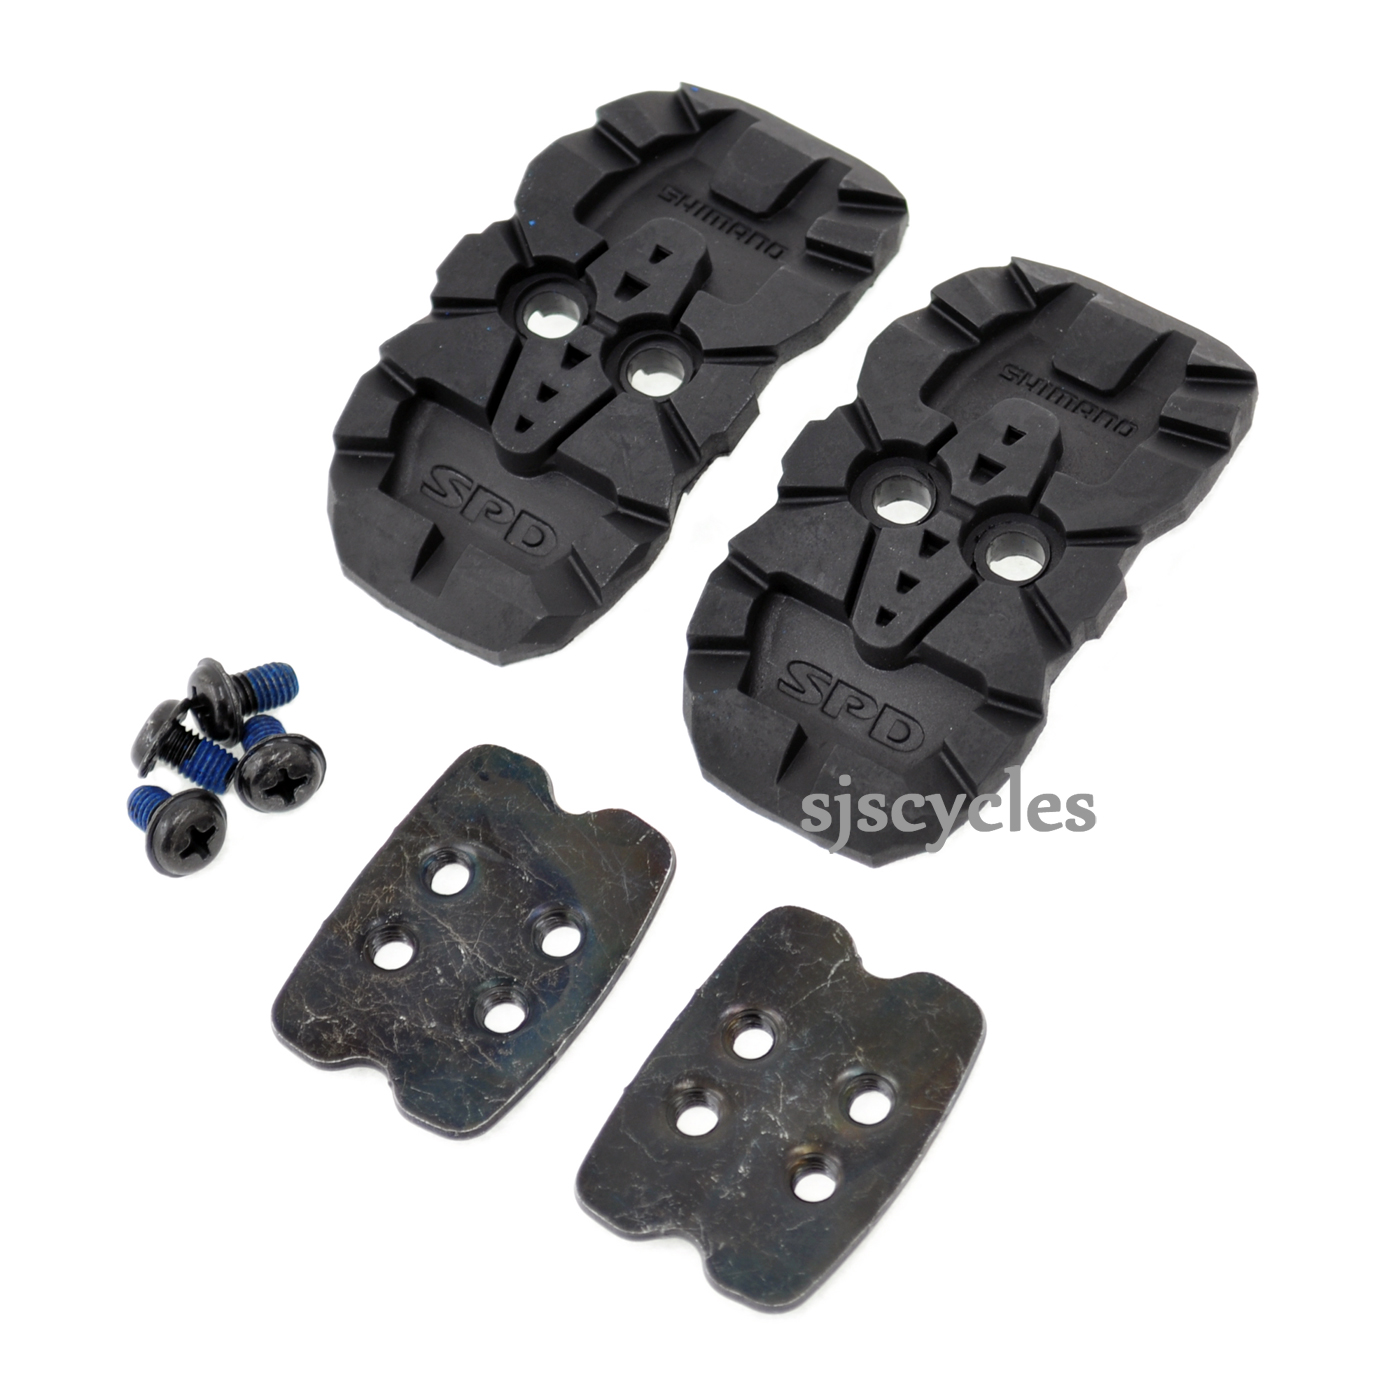 Shimano Spare Sole Cleat Covers